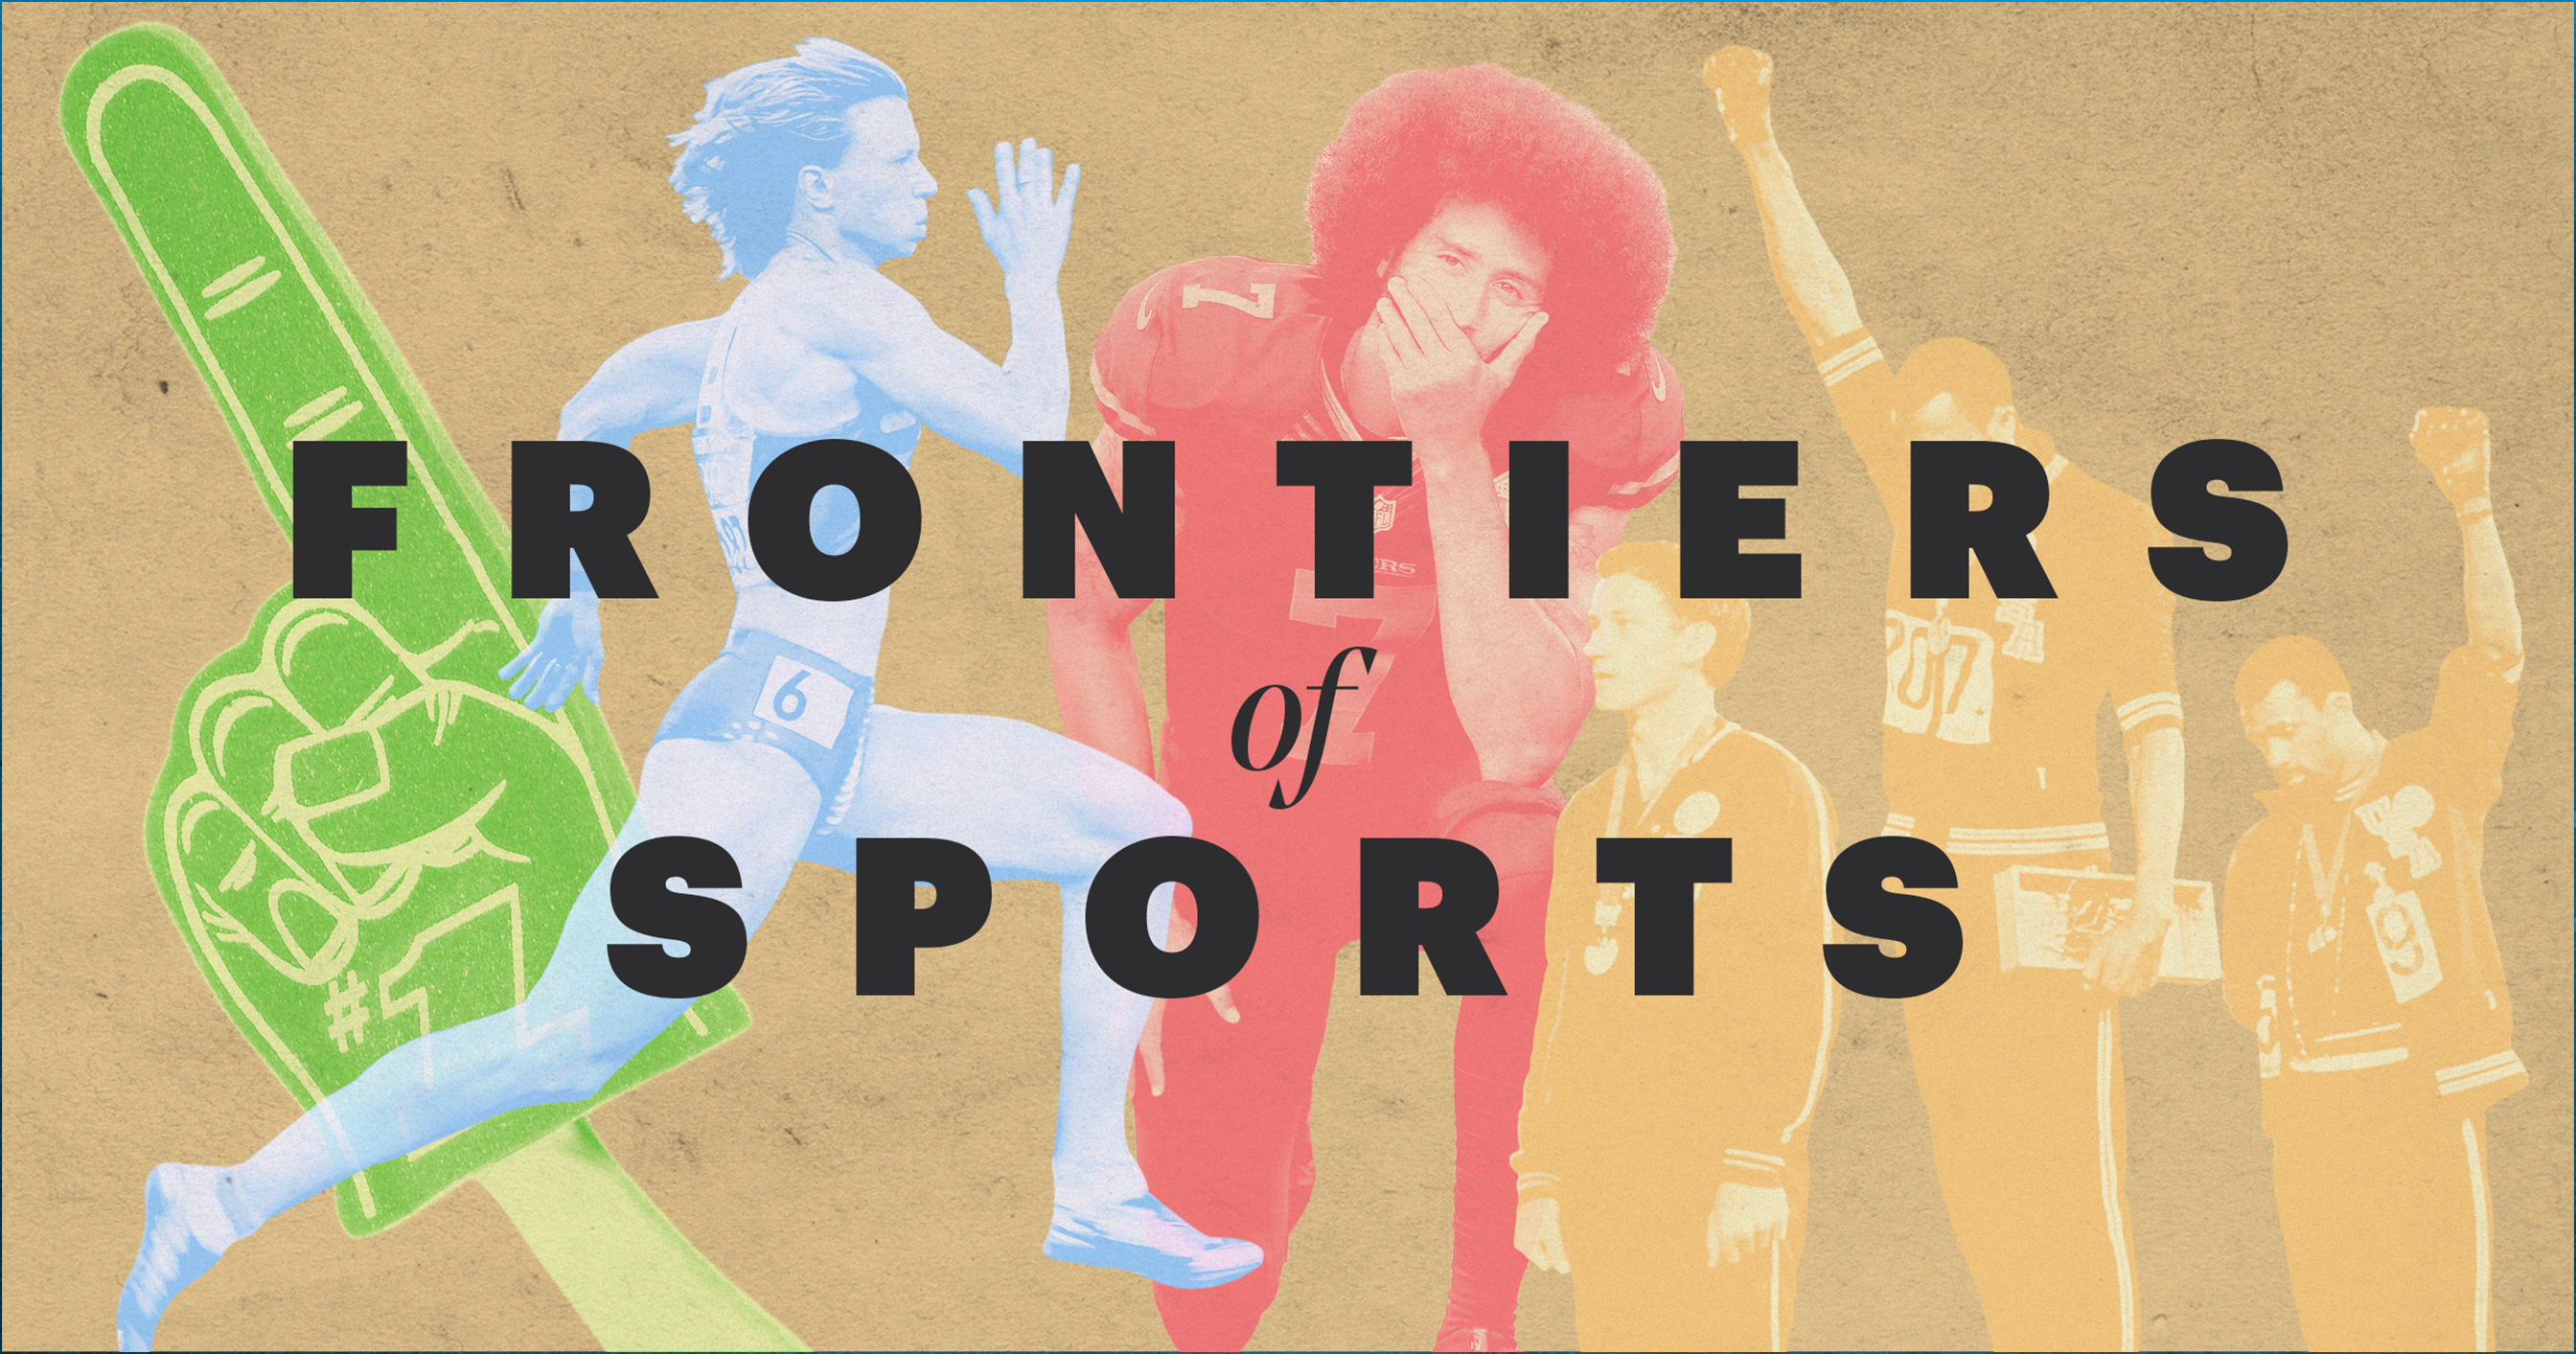 Frontiers of Sports